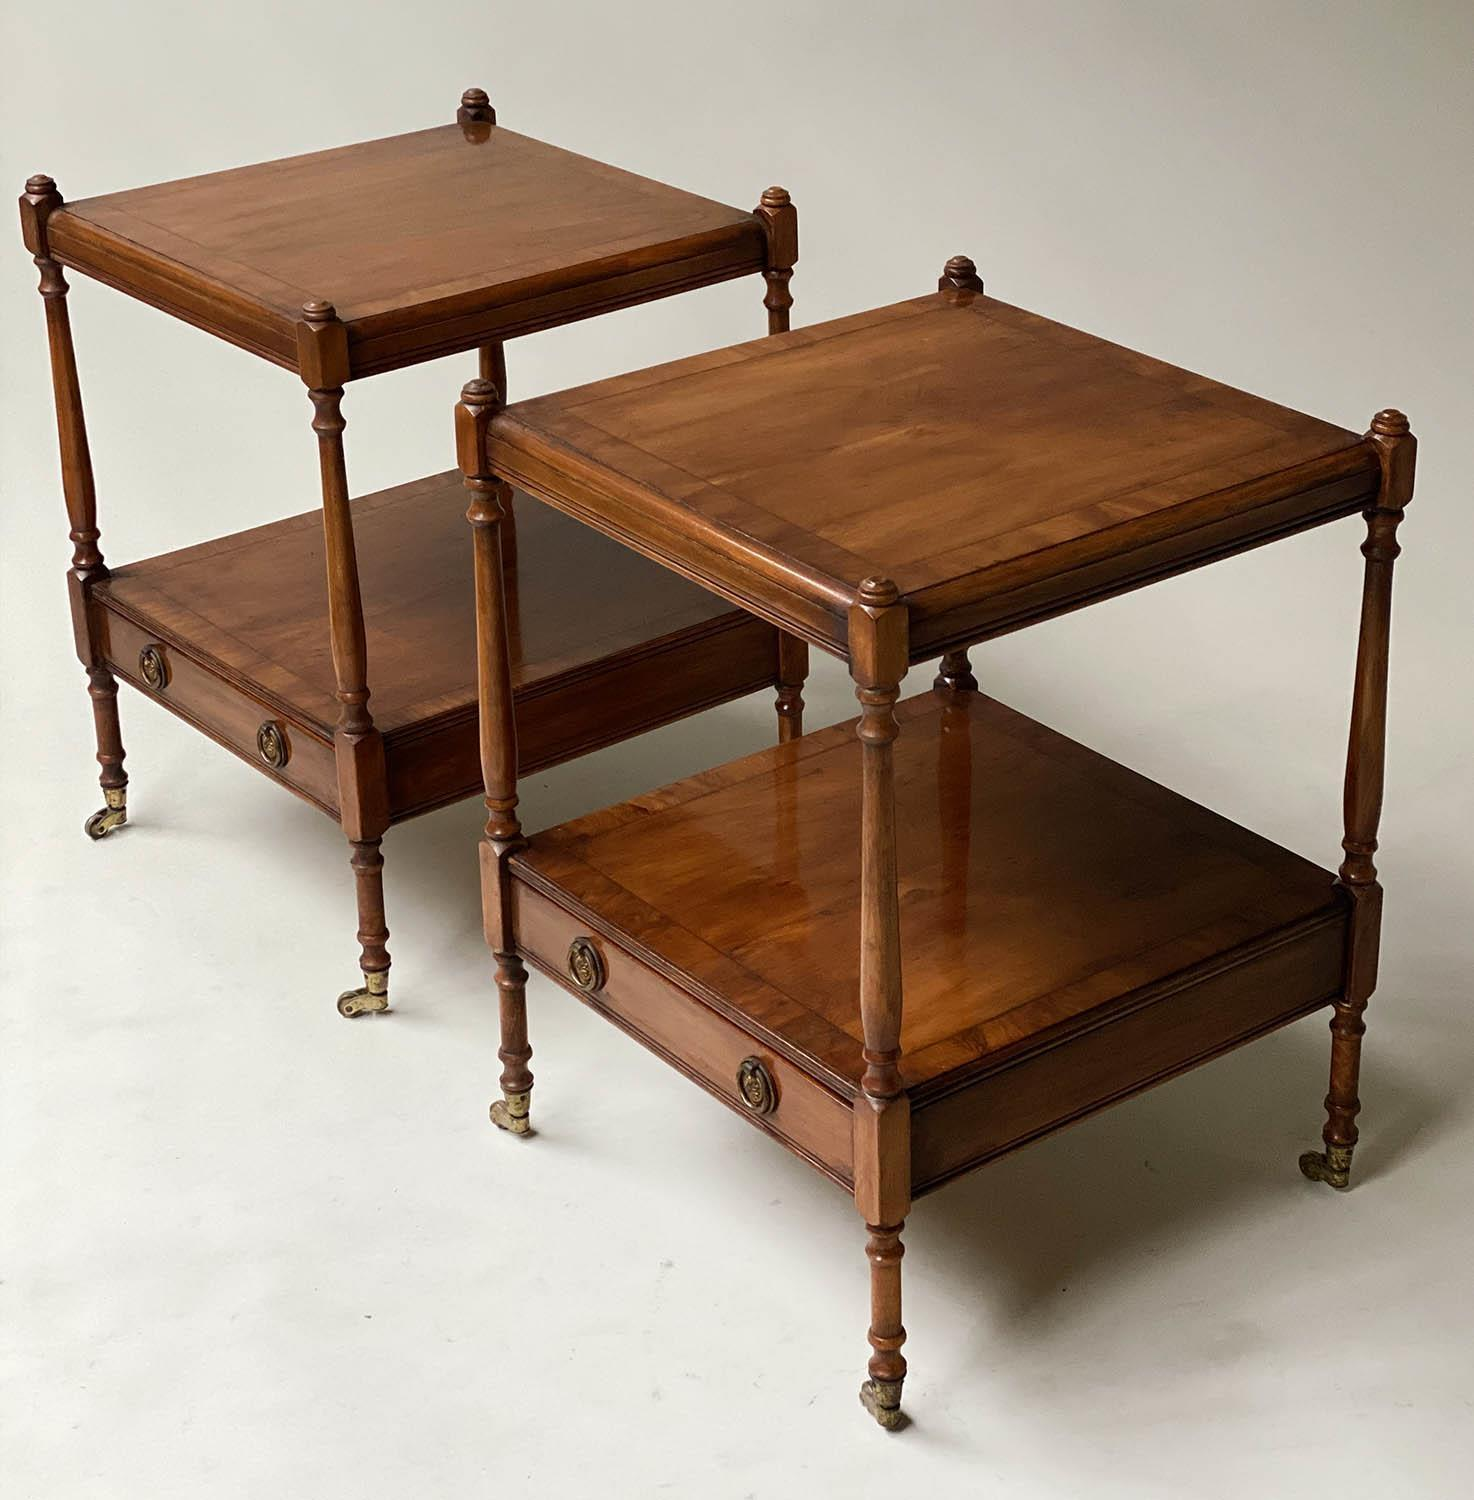 LAMP TABLES, a pair, George III style yewwood of two tiers, each with drawer, 45cm x 45cm x 60cm - Image 3 of 6